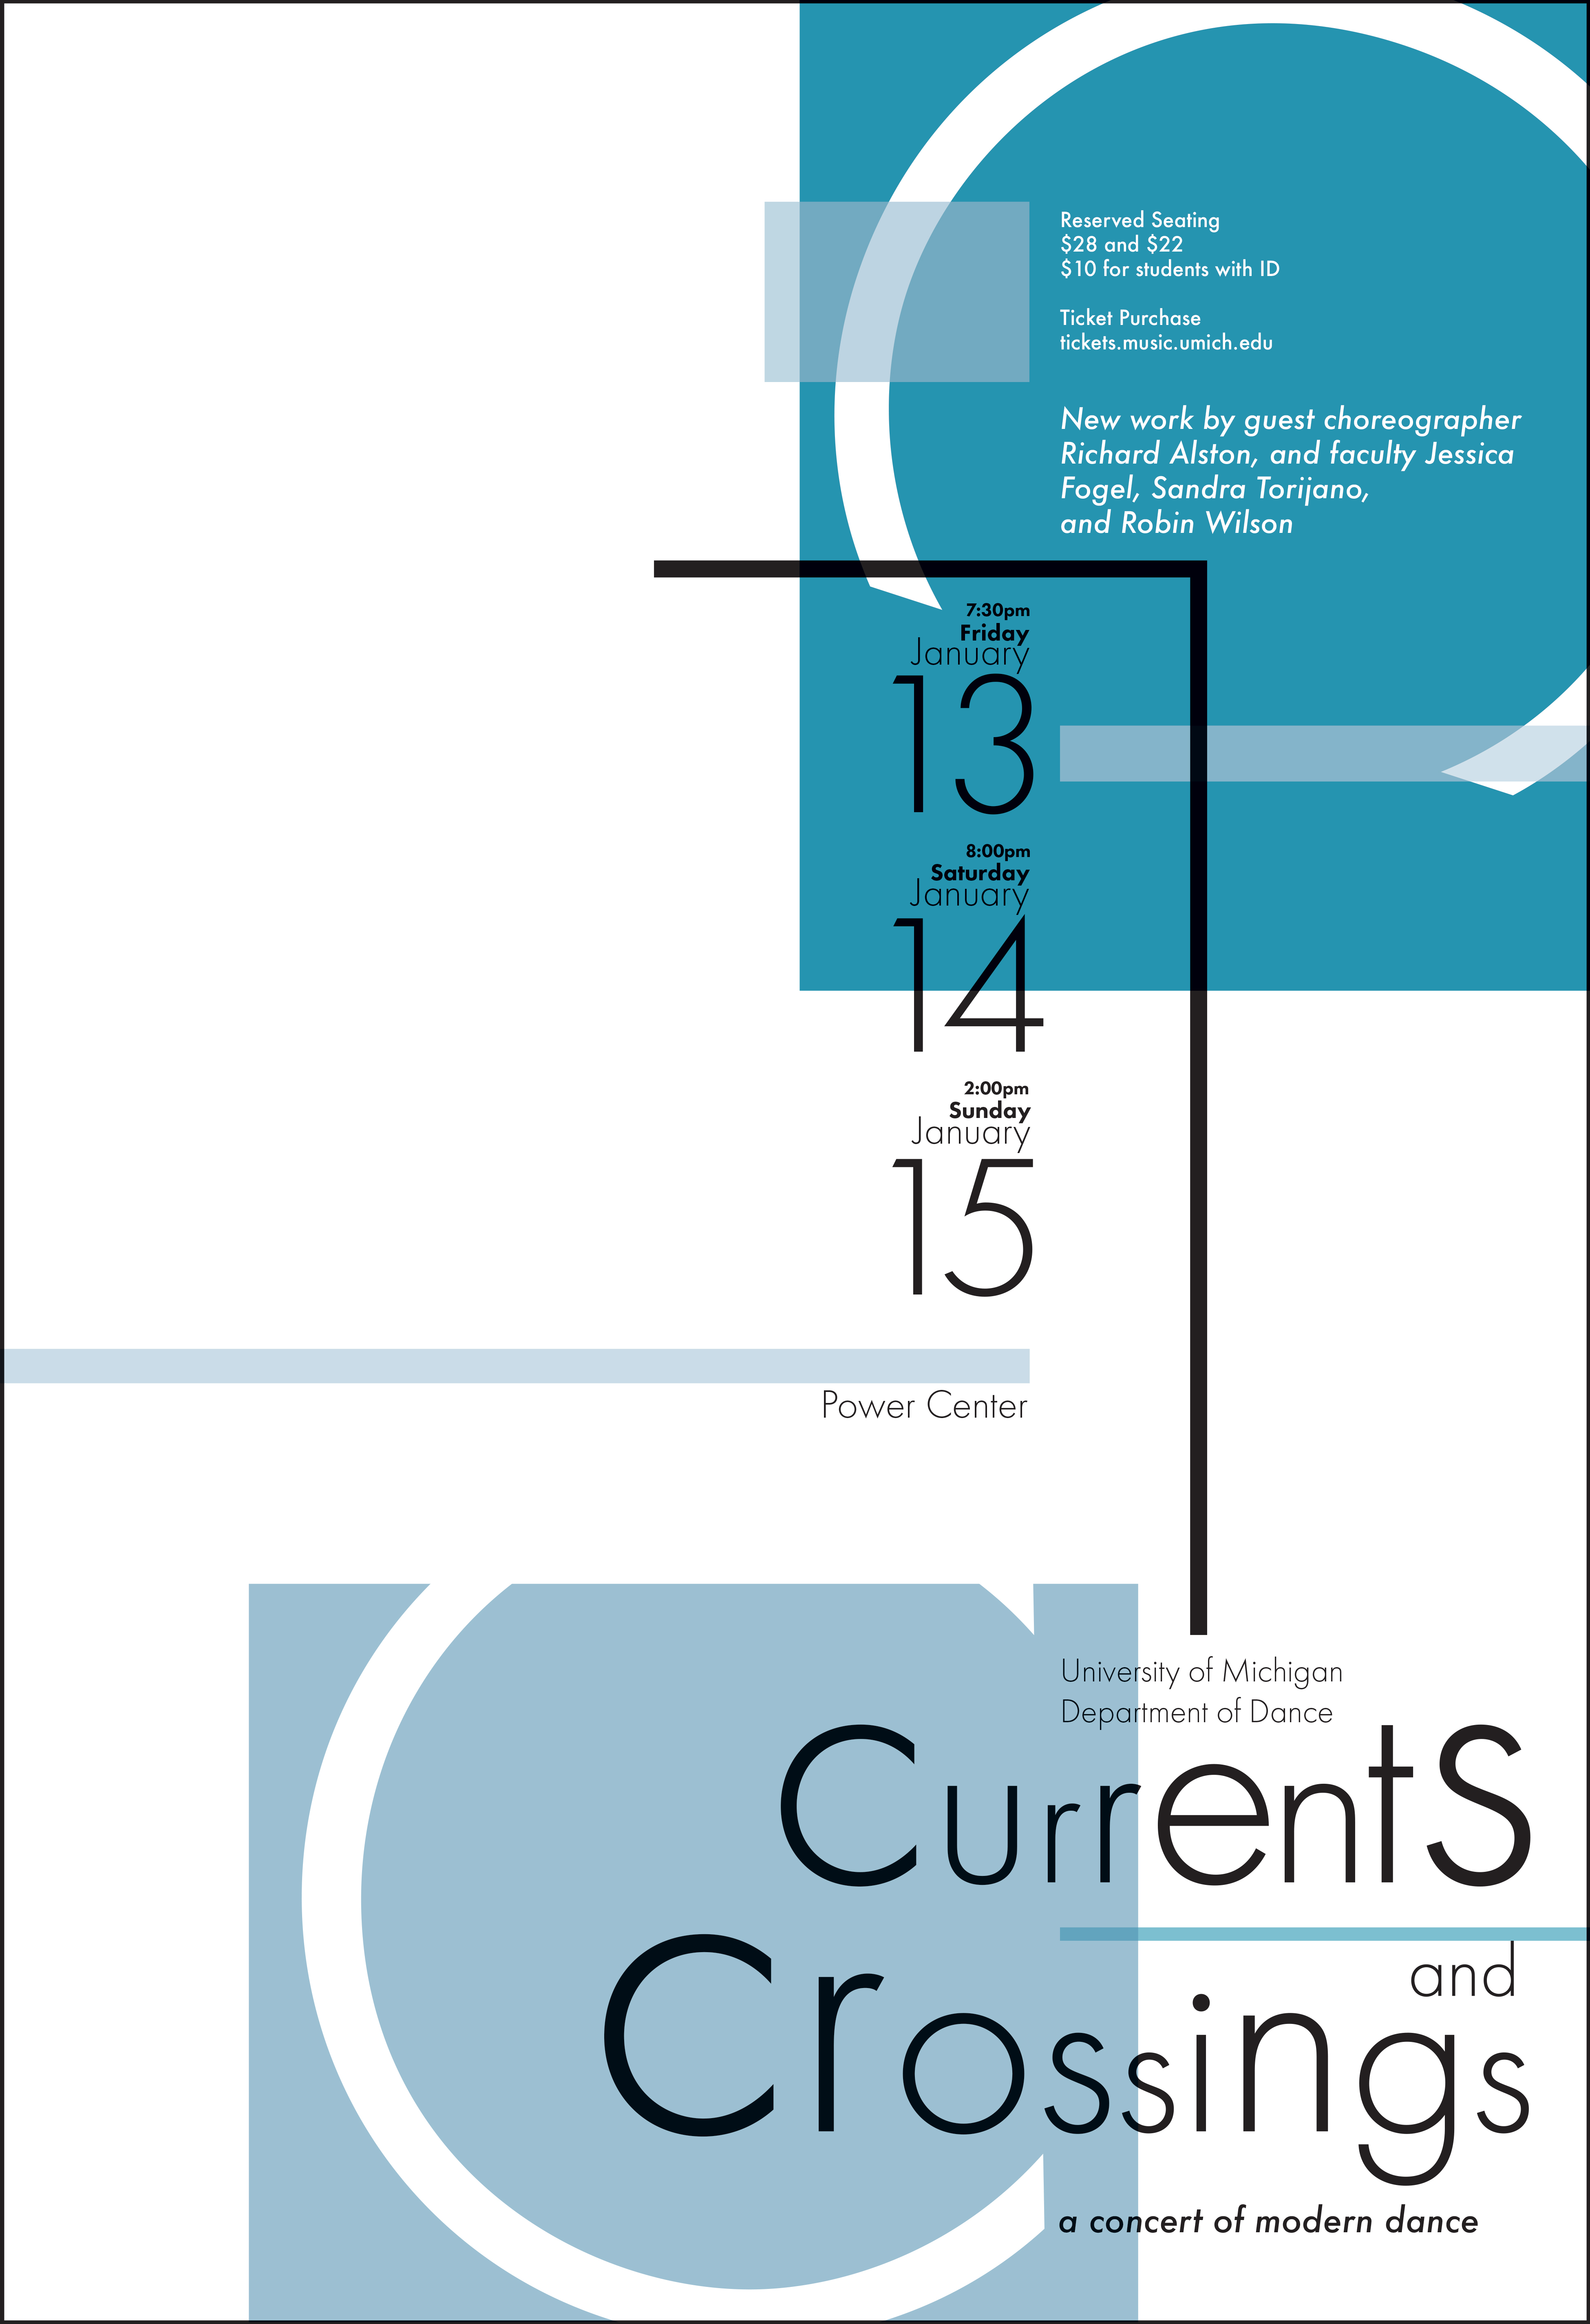 Currents and Crossings